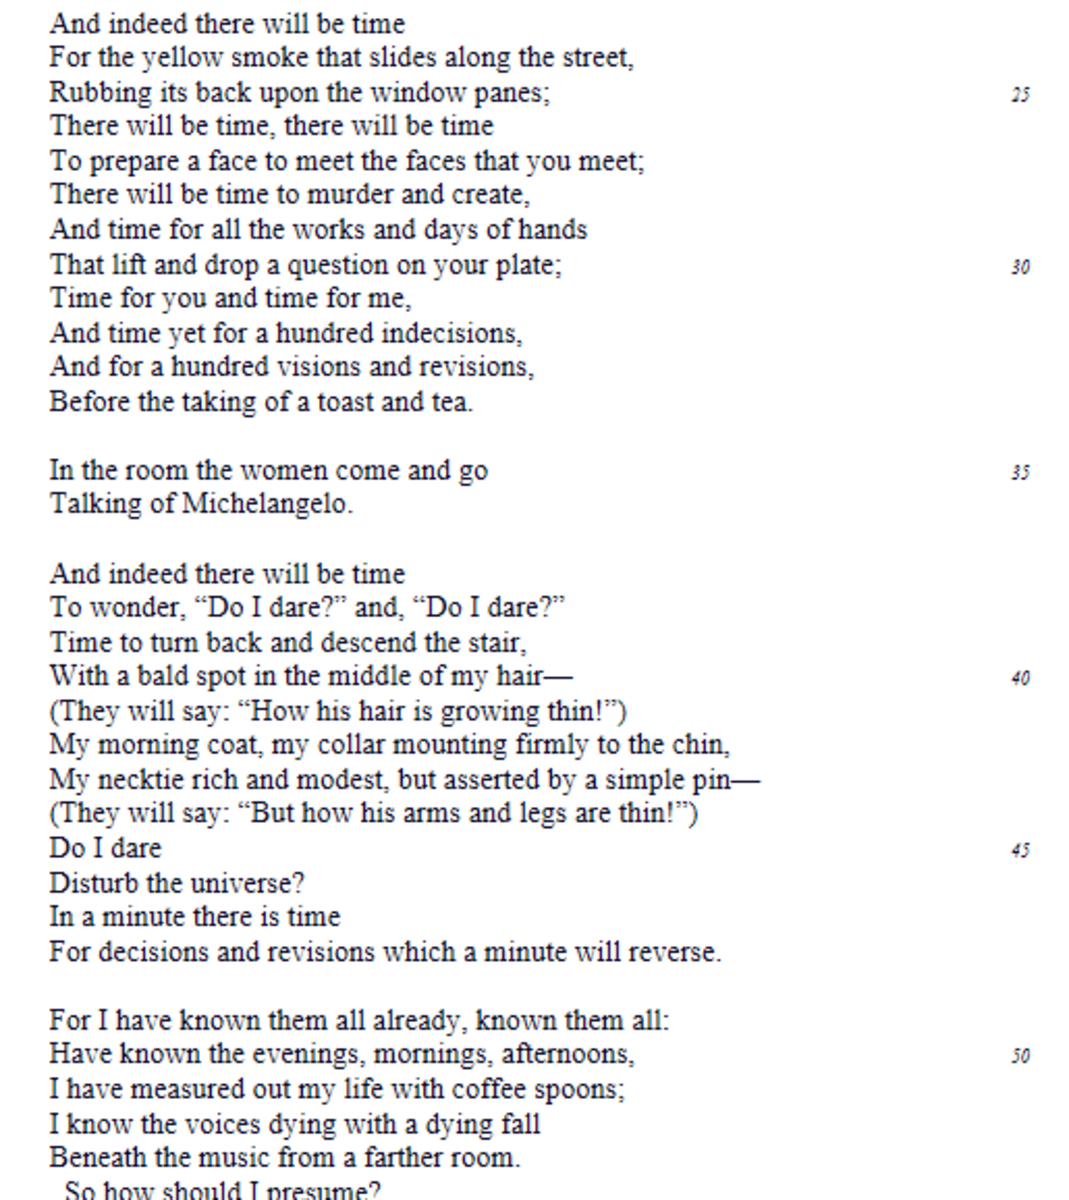 analysis-of-poem-the-love-song-of-j-alfred-prufrock-by-ts-eliot